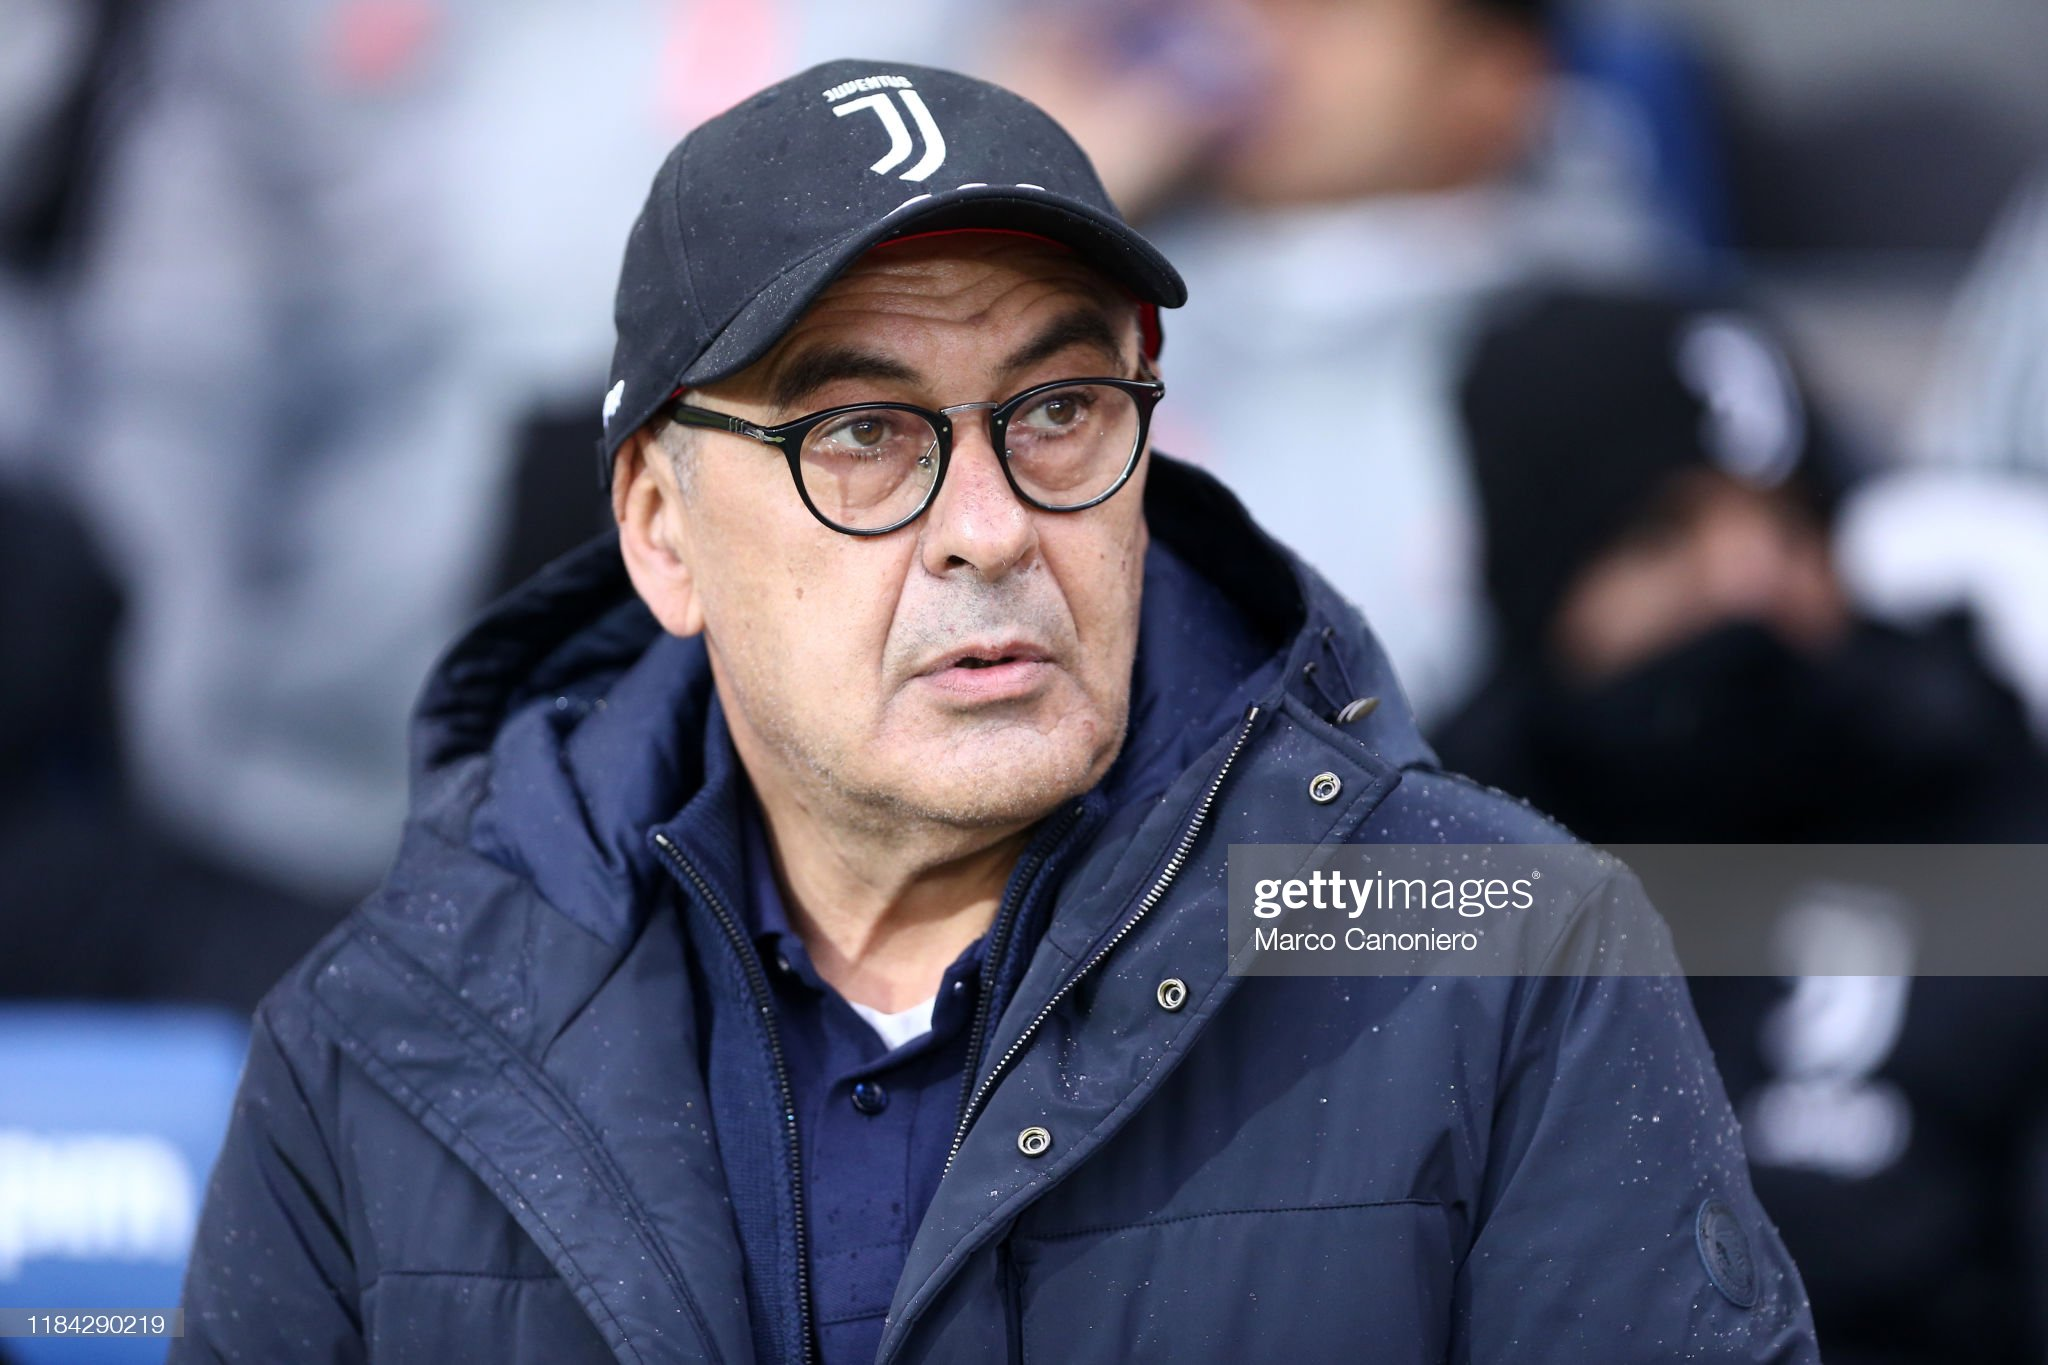 ¿Cuánto mide Maurizio Sarri? - Altura - Real height Maurizio-sarri-head-coach-of-juventus-fc-during-the-serie-a-match-picture-id1184290219?s=2048x2048